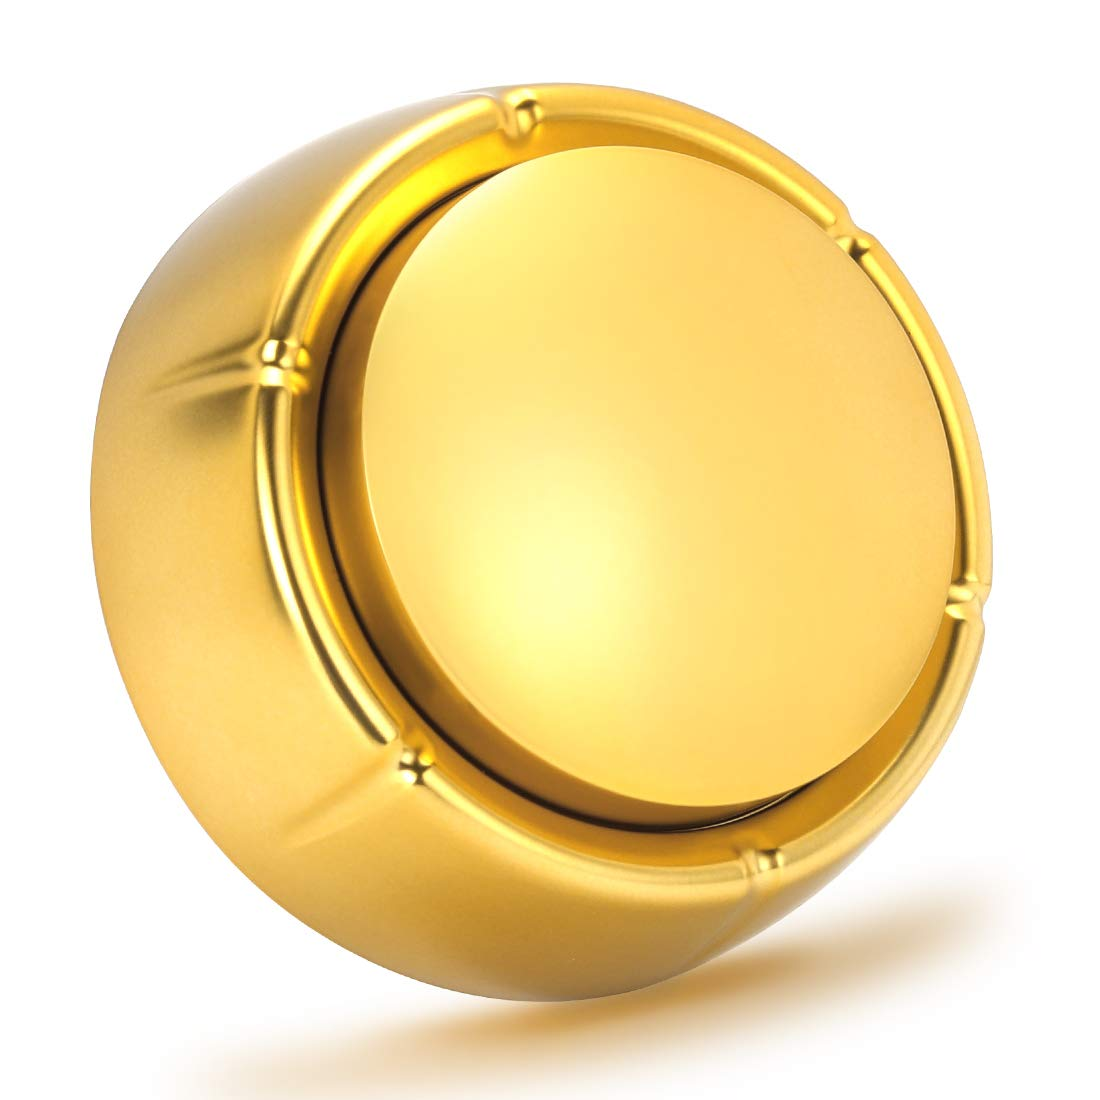 Cover Easy Button Recordable Sound Talking Button Custom Office Desk Gag Gift 30 Seconds 2 AAA Batteries Included - Newest Color- Gold